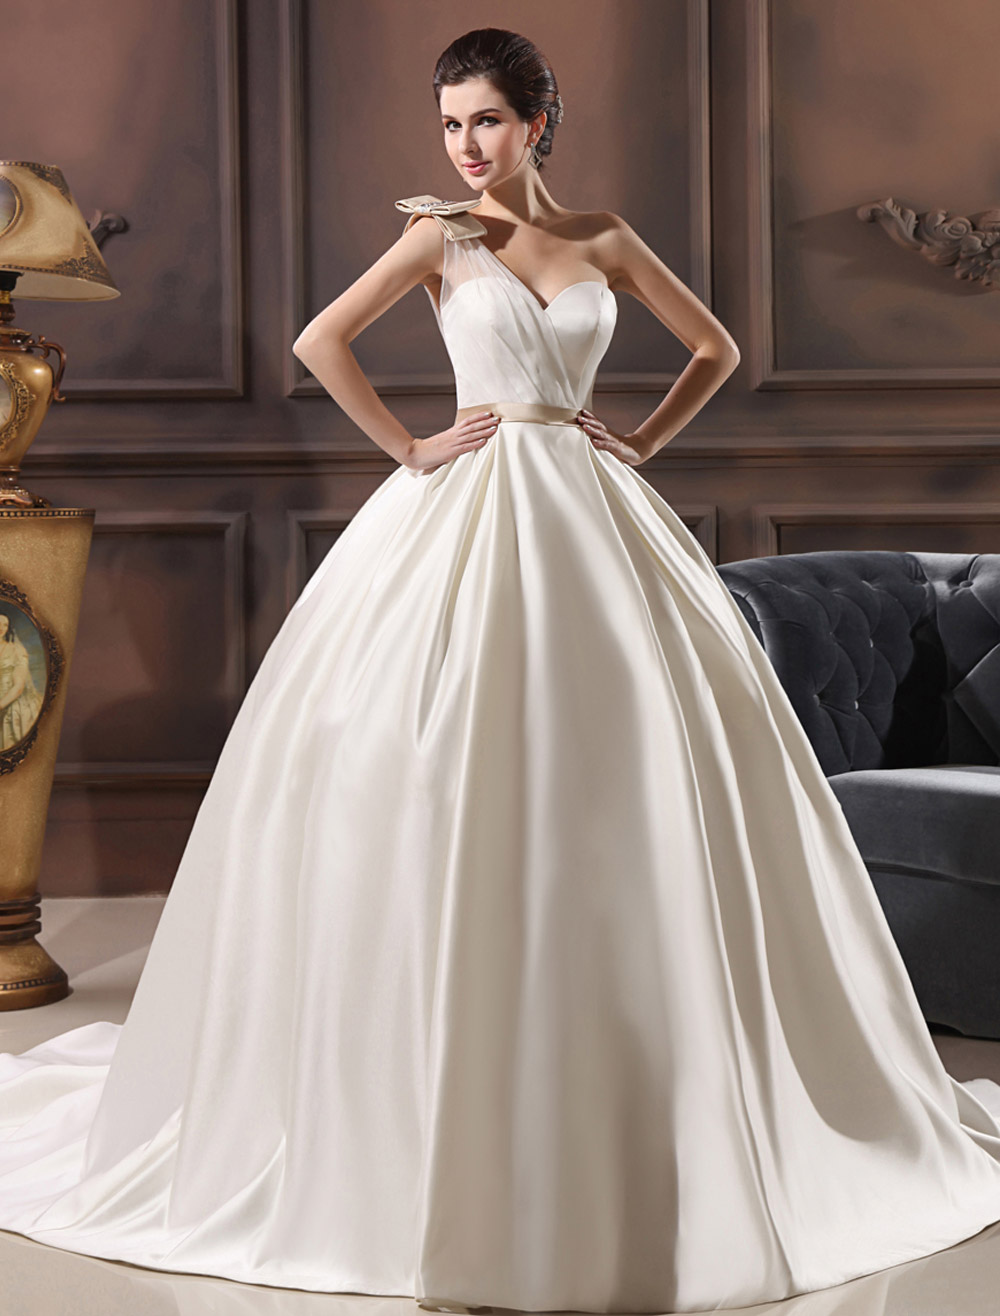 Ivory A-Line One-Shoulder Rhinestone Satin Wedding Dress For Bride Milanoo